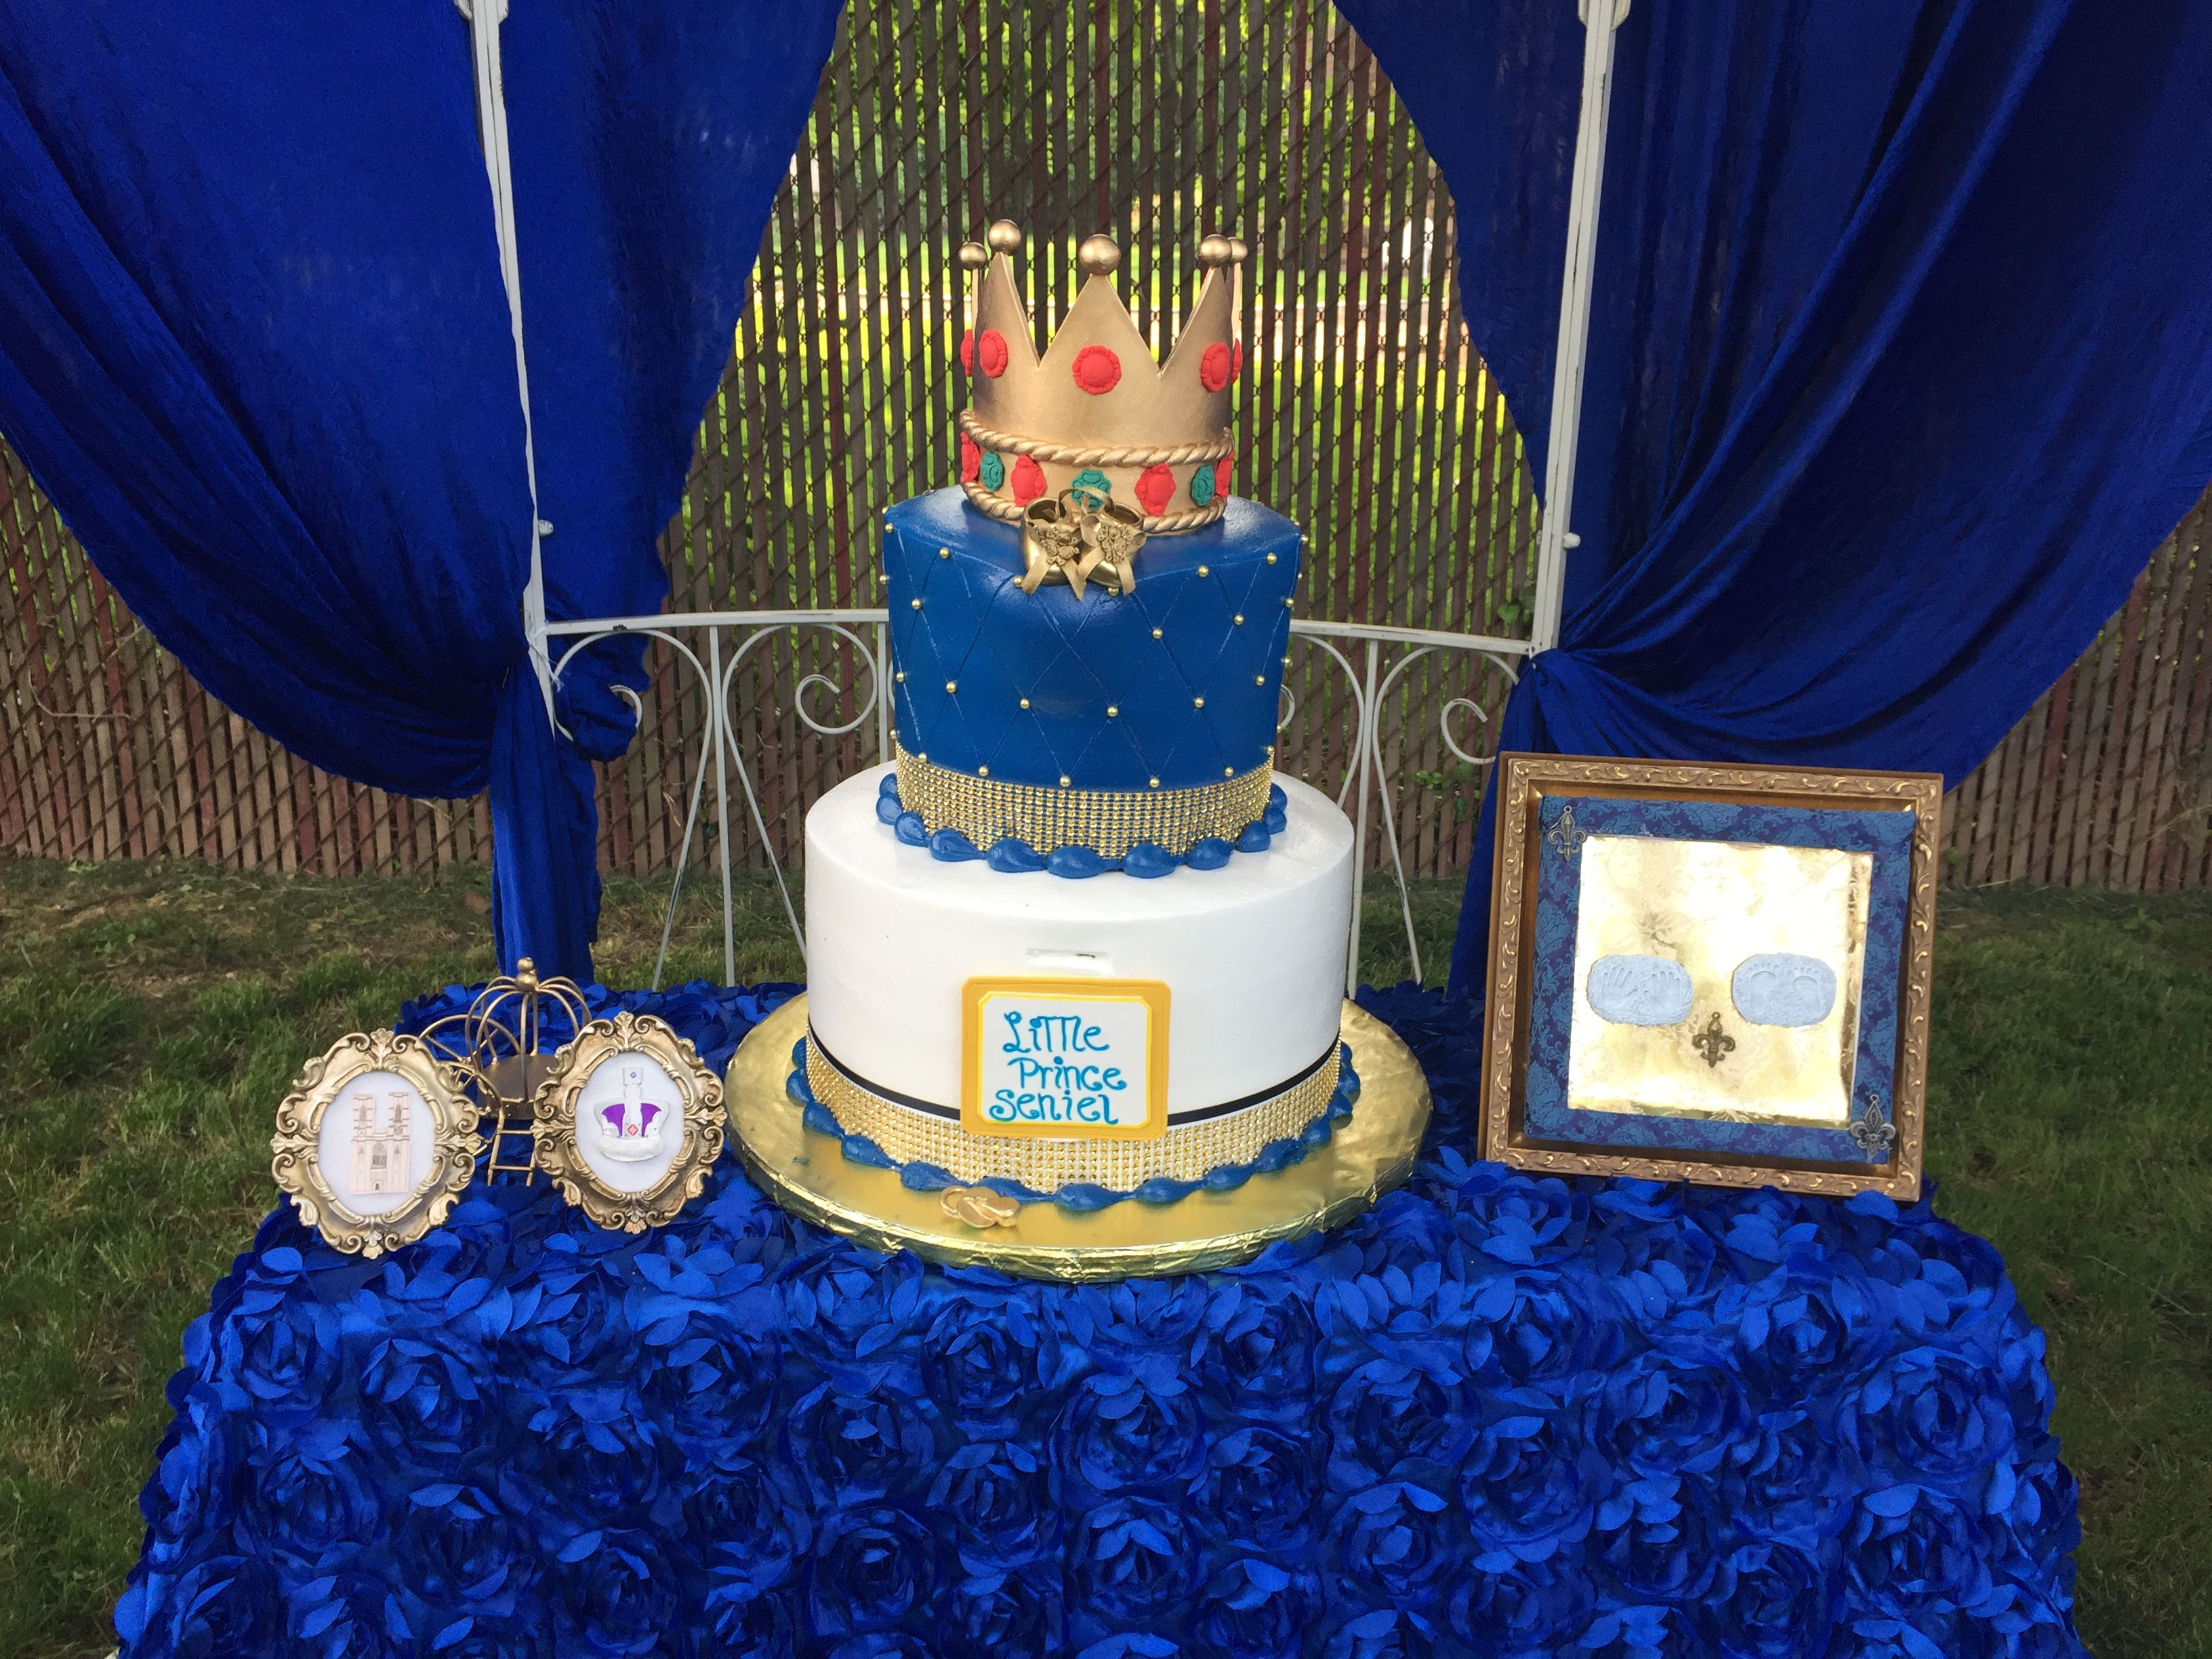 Prince Theme Party #RoyalBlue #babyshower #birthda #party #birthdayparty #Gold #royal #castle #outdoorparty #garden #beautiful #boy #cake #cupcake #candytable